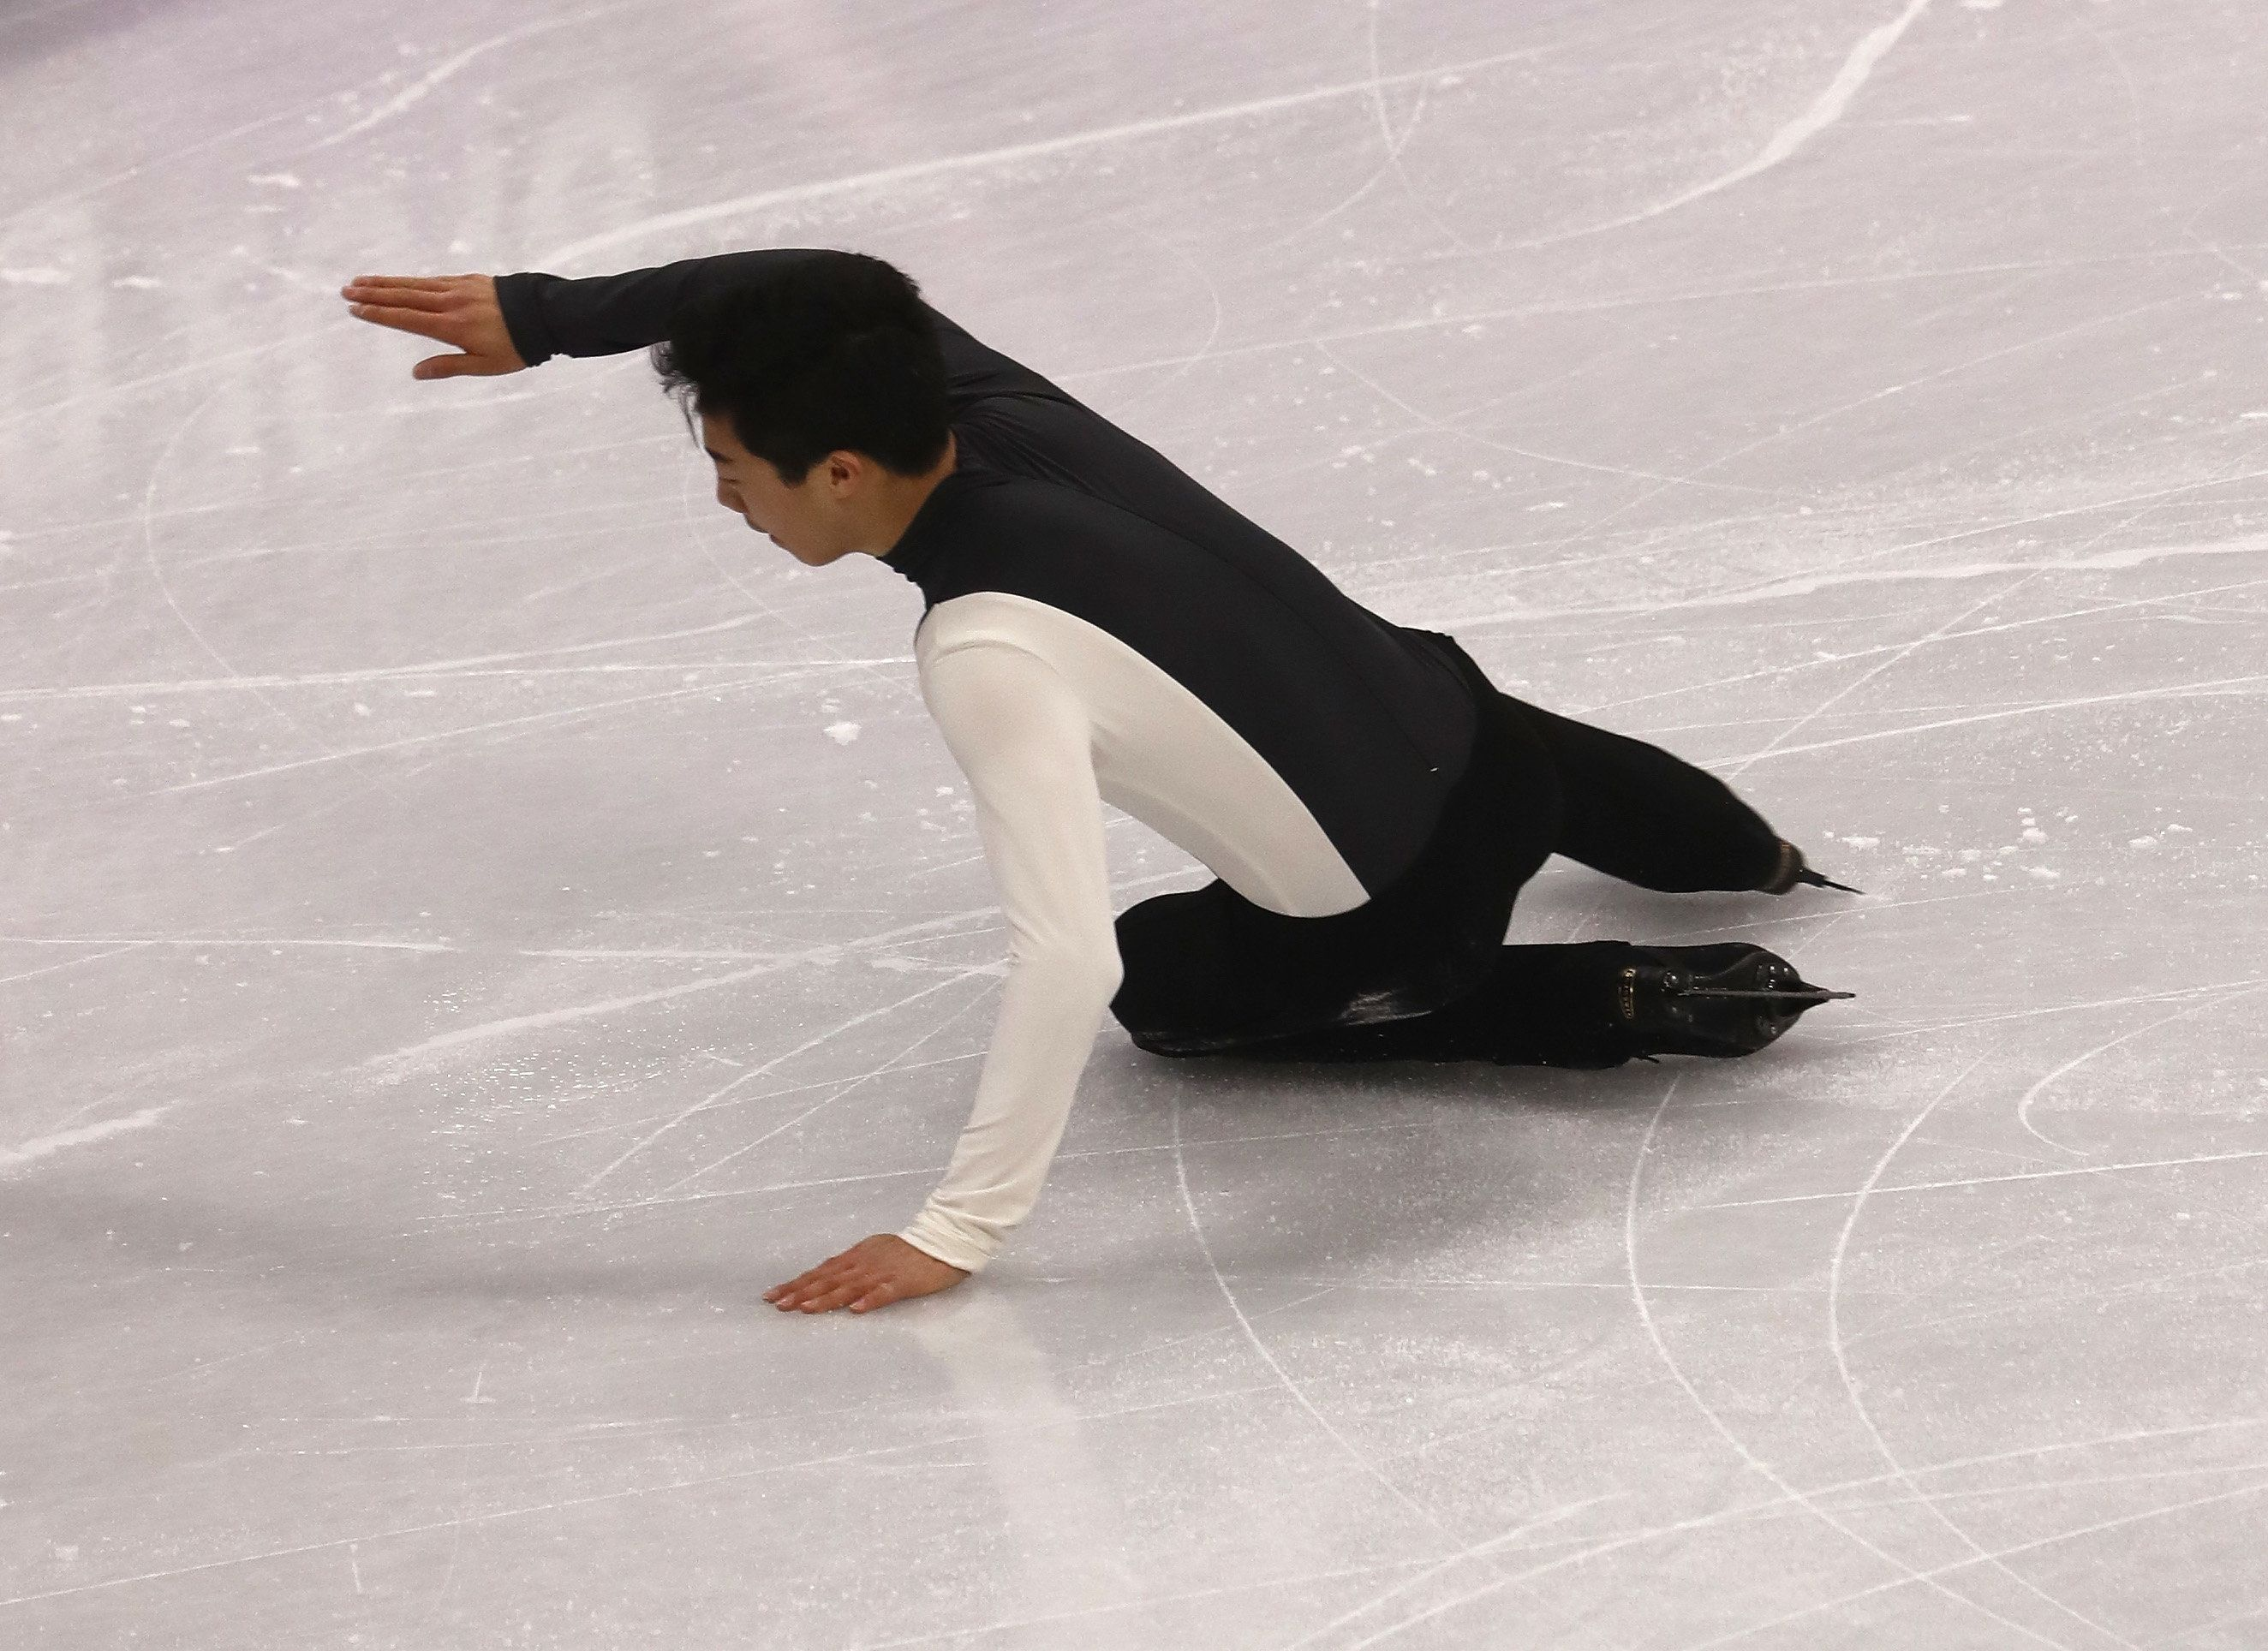 Nathan Chen bombs in his men's short program at 2018 Winter Olympics